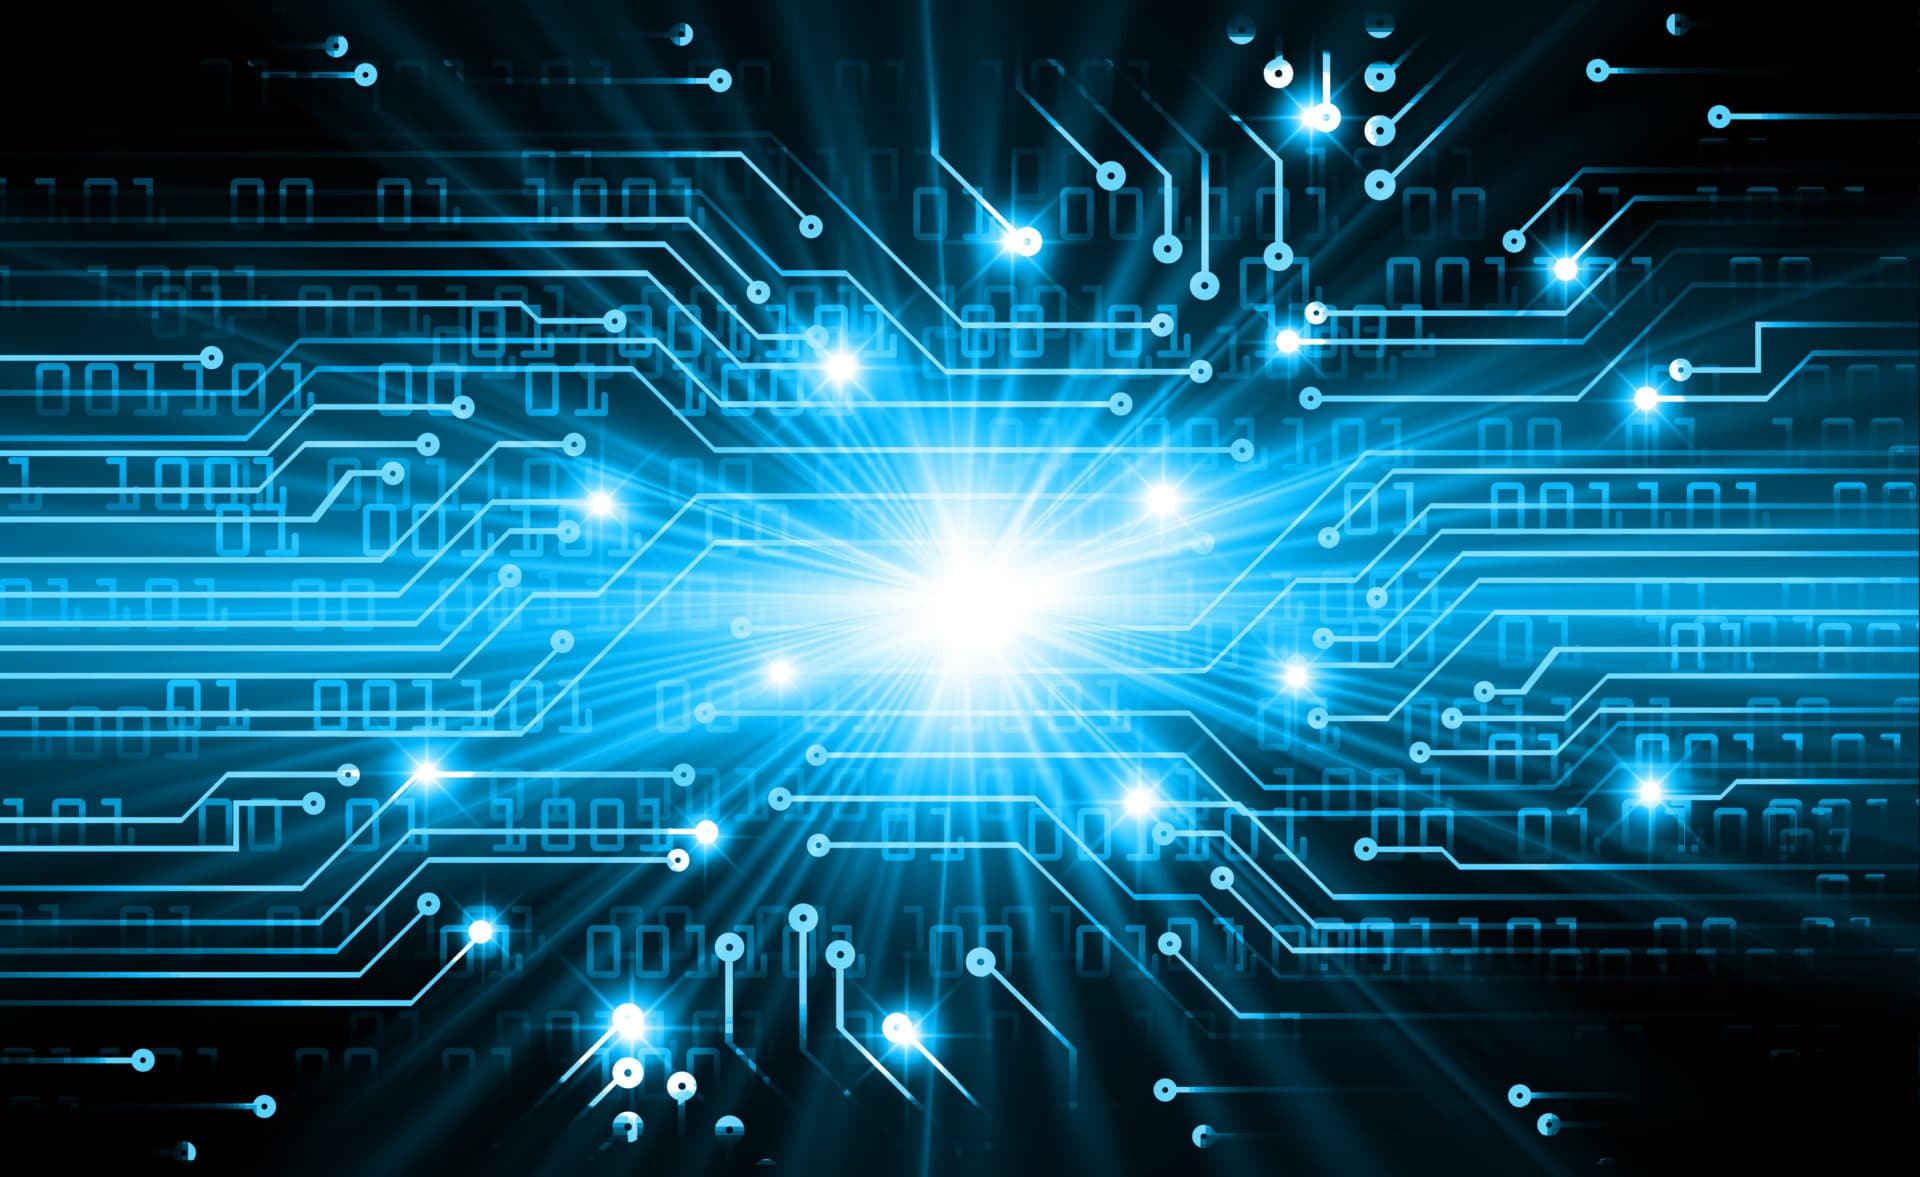 Hewlett Packard Enterprise and China Telecom Beijing Research Institute open joint NFV lab  TM